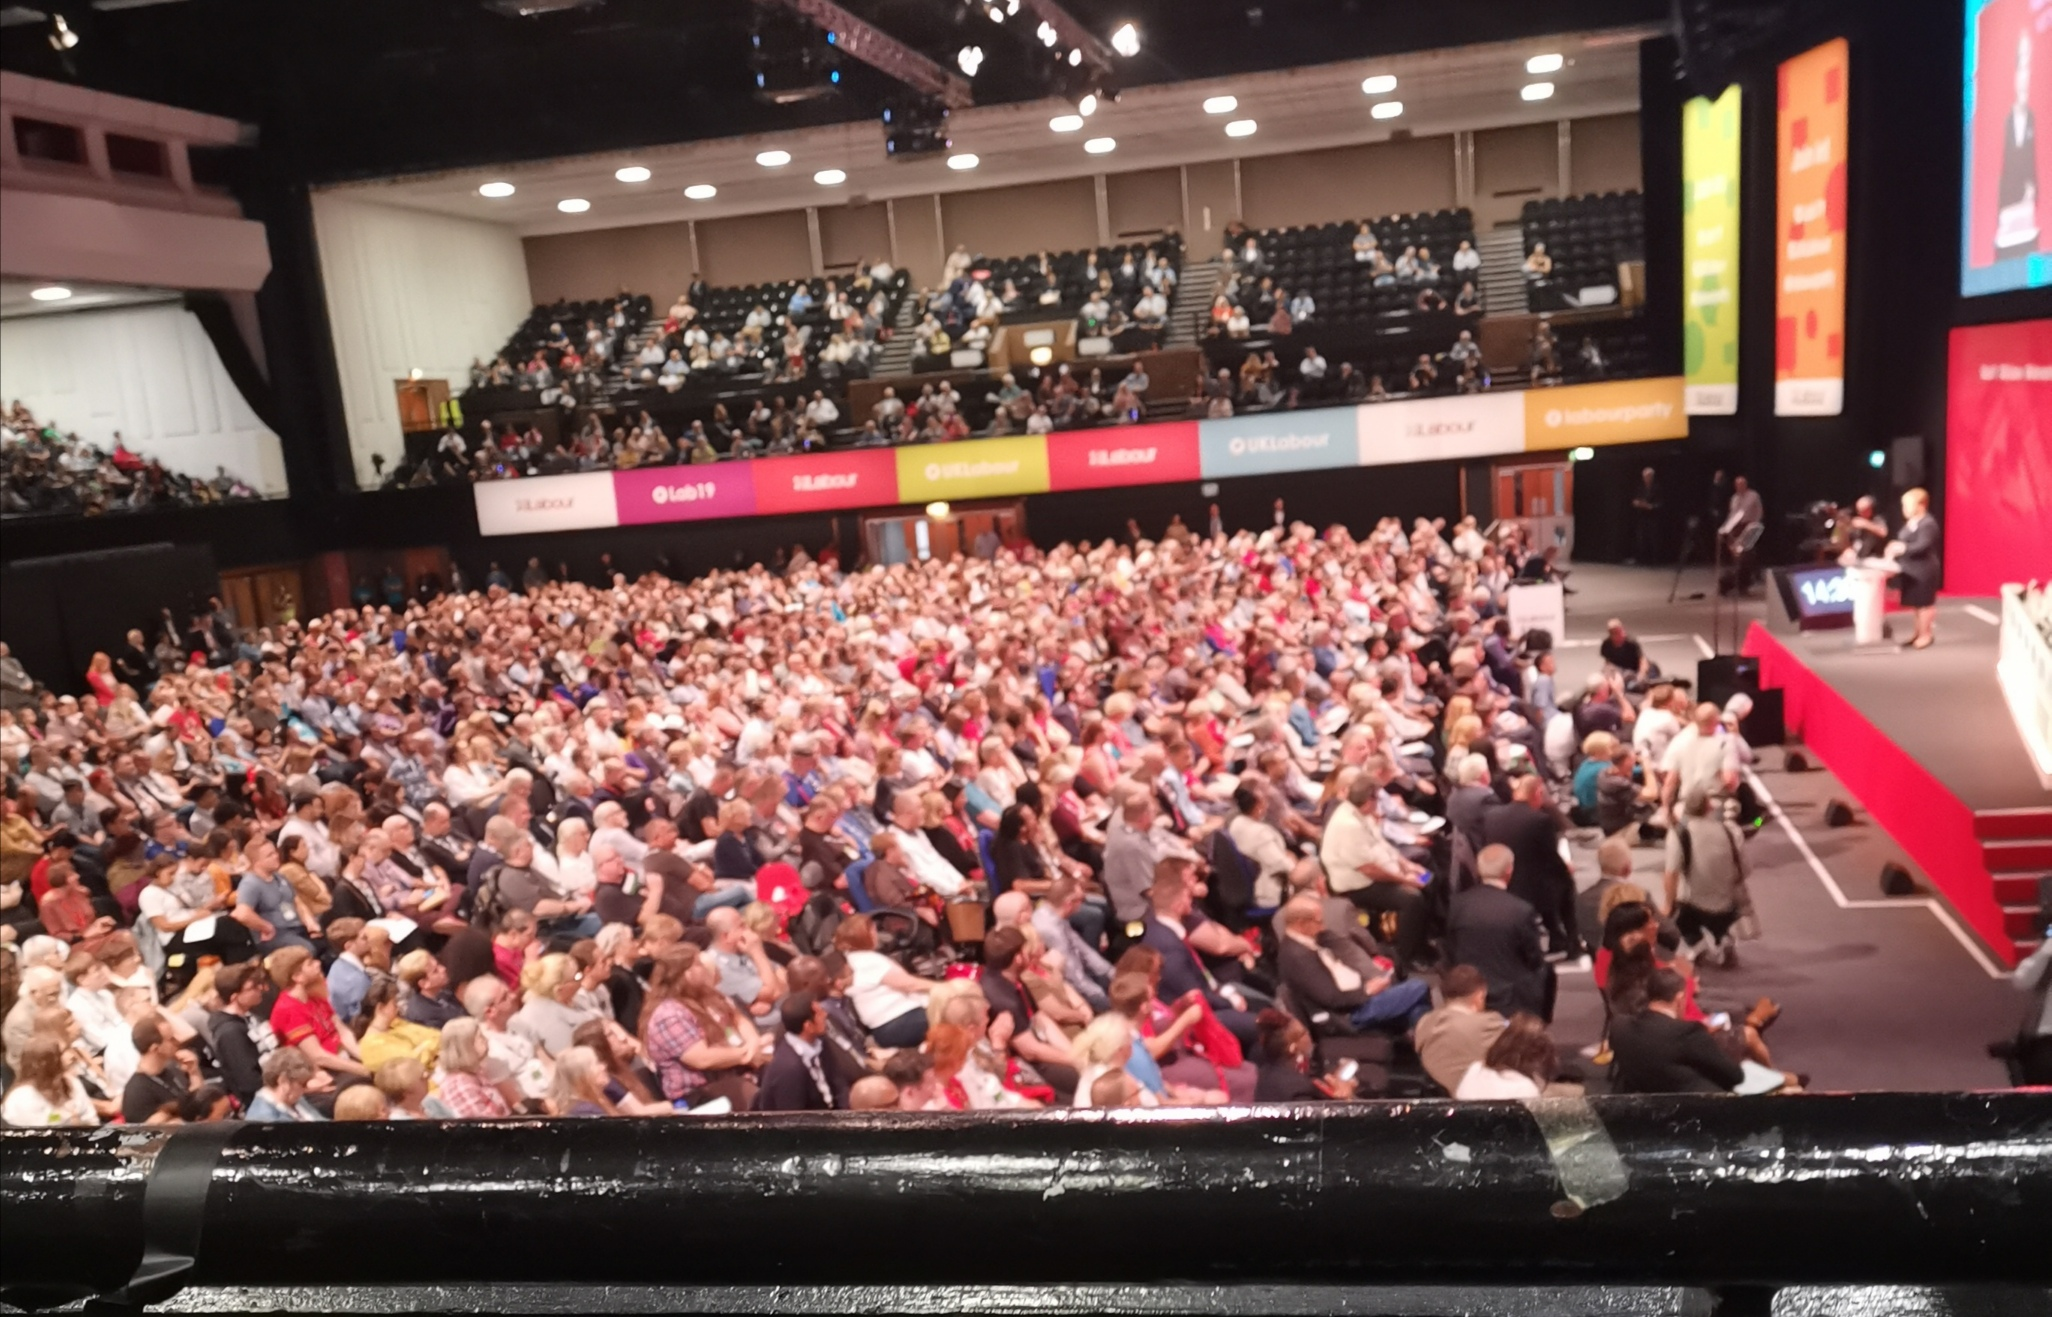 obsession at the Labour Party conference